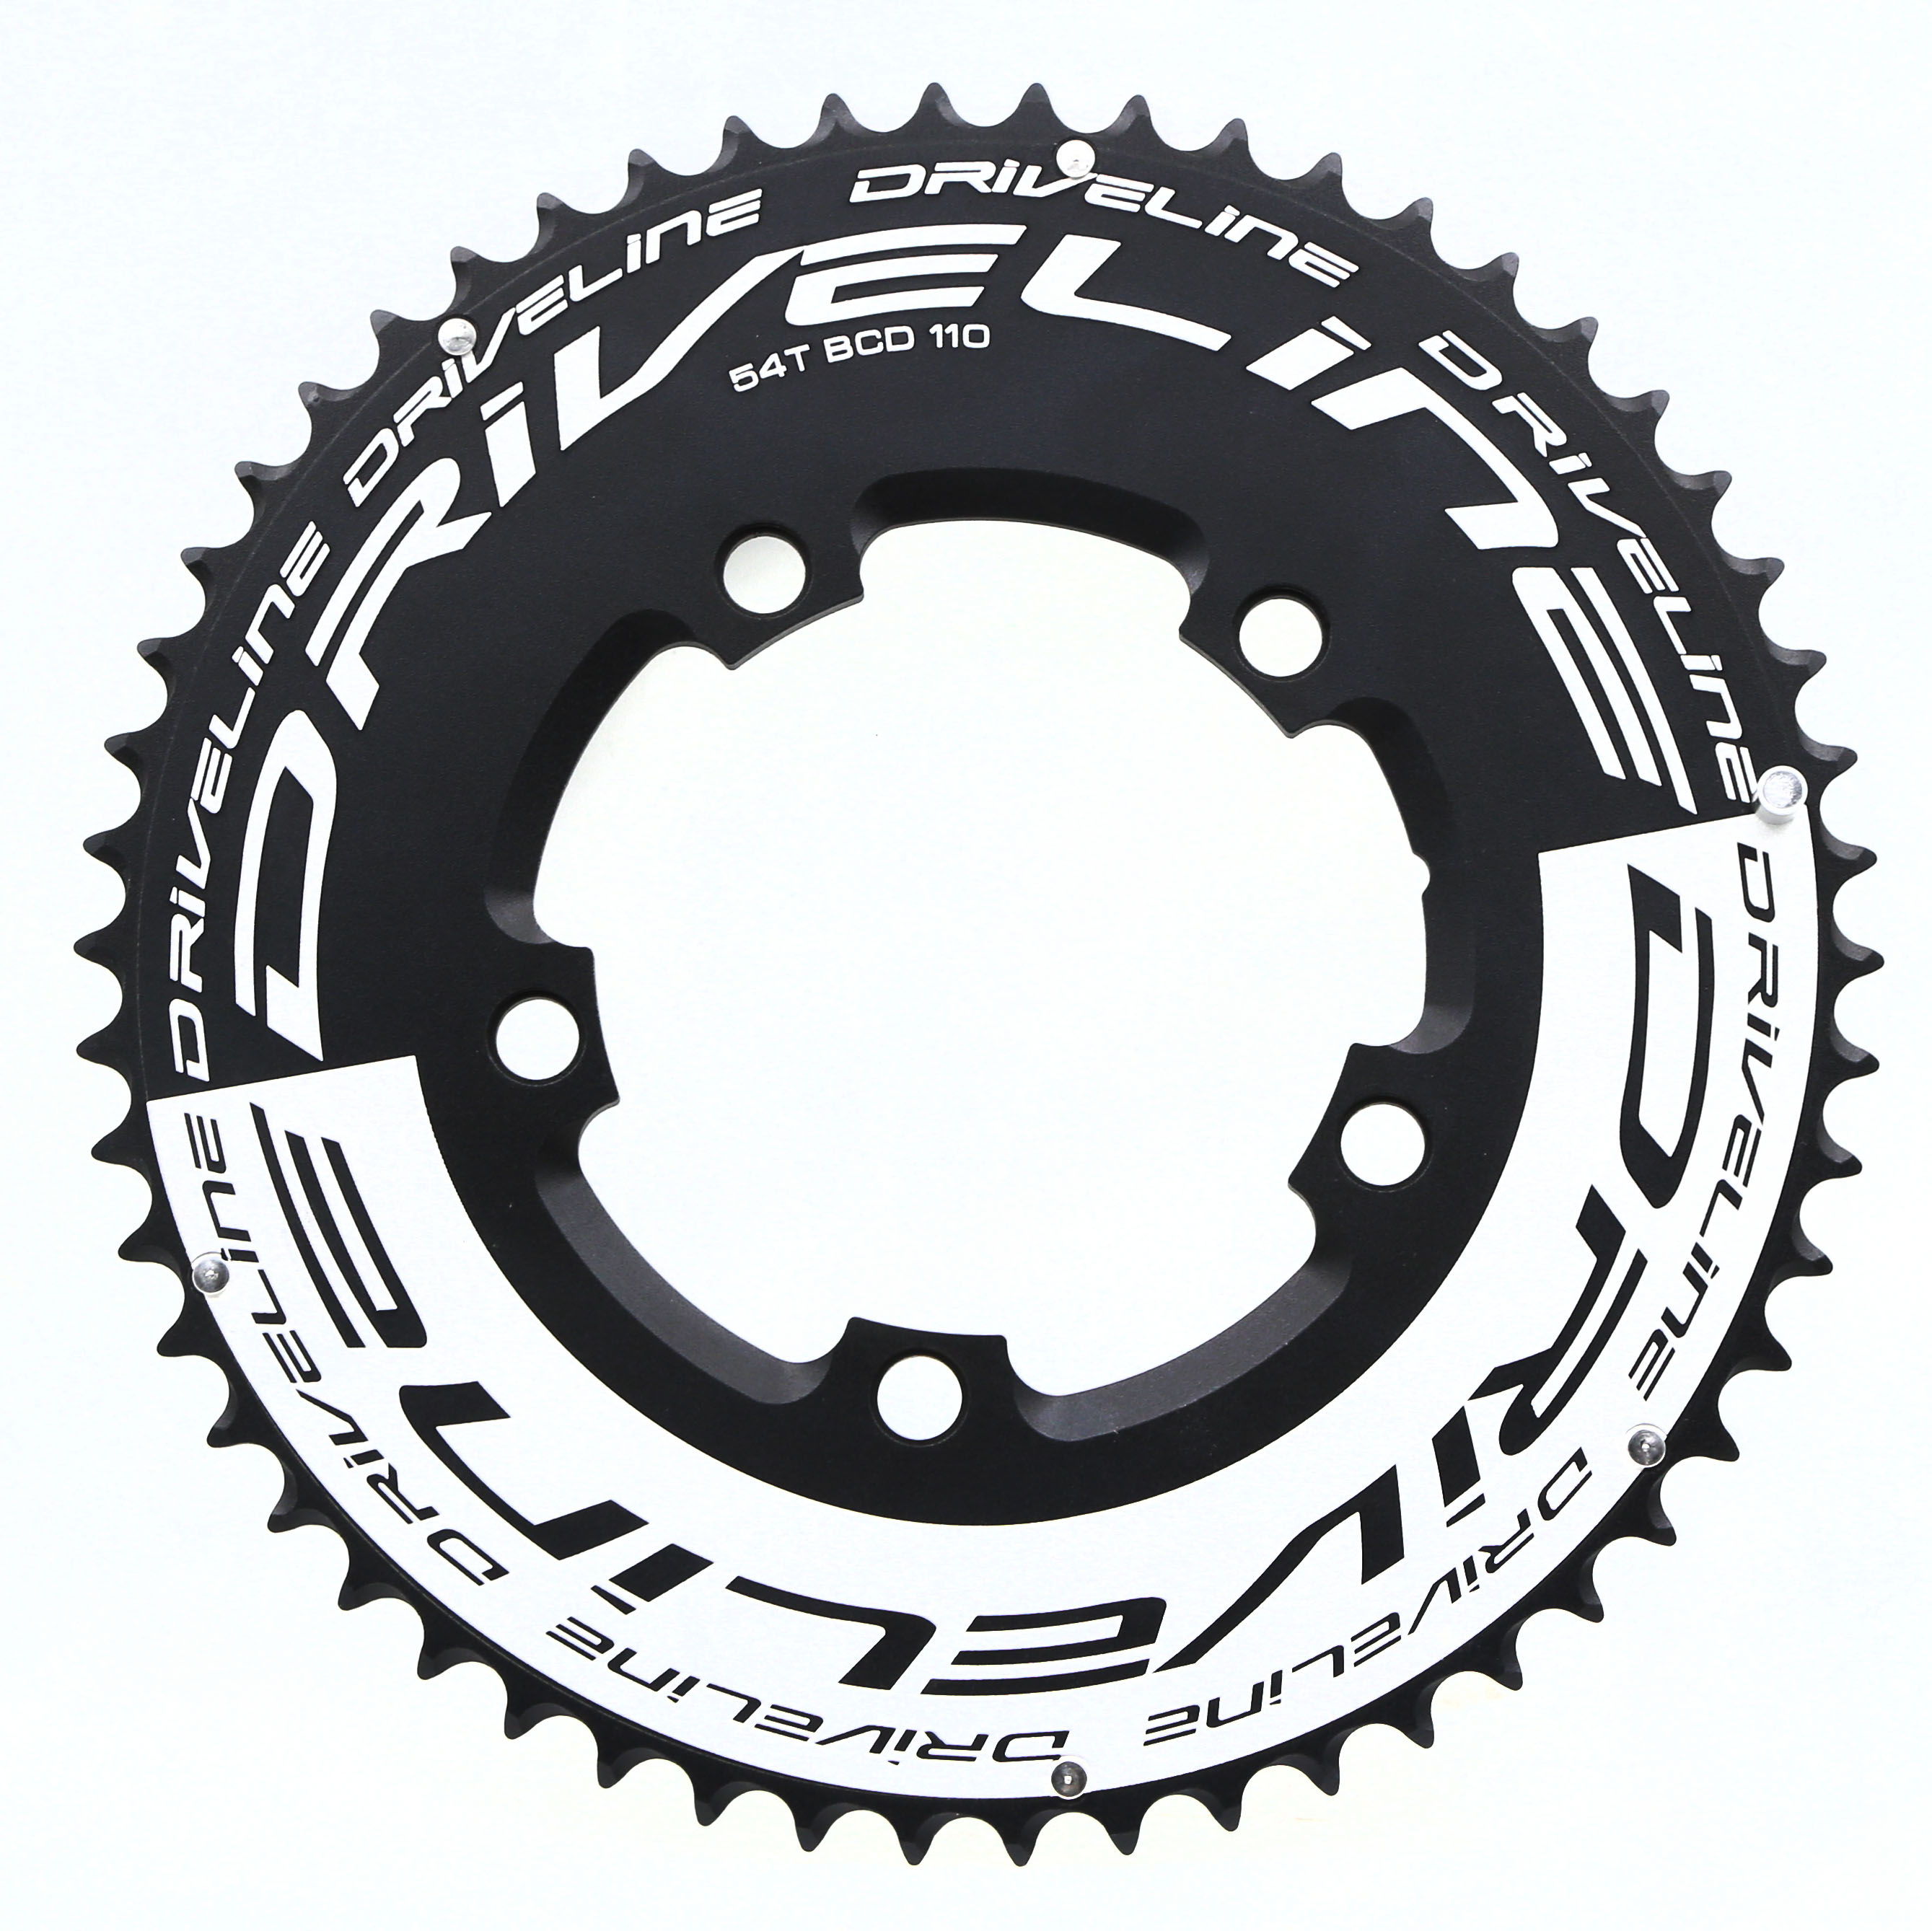 Black BCD 130mm 106g Driveline CNC 7075 Alloy Chainring 53T